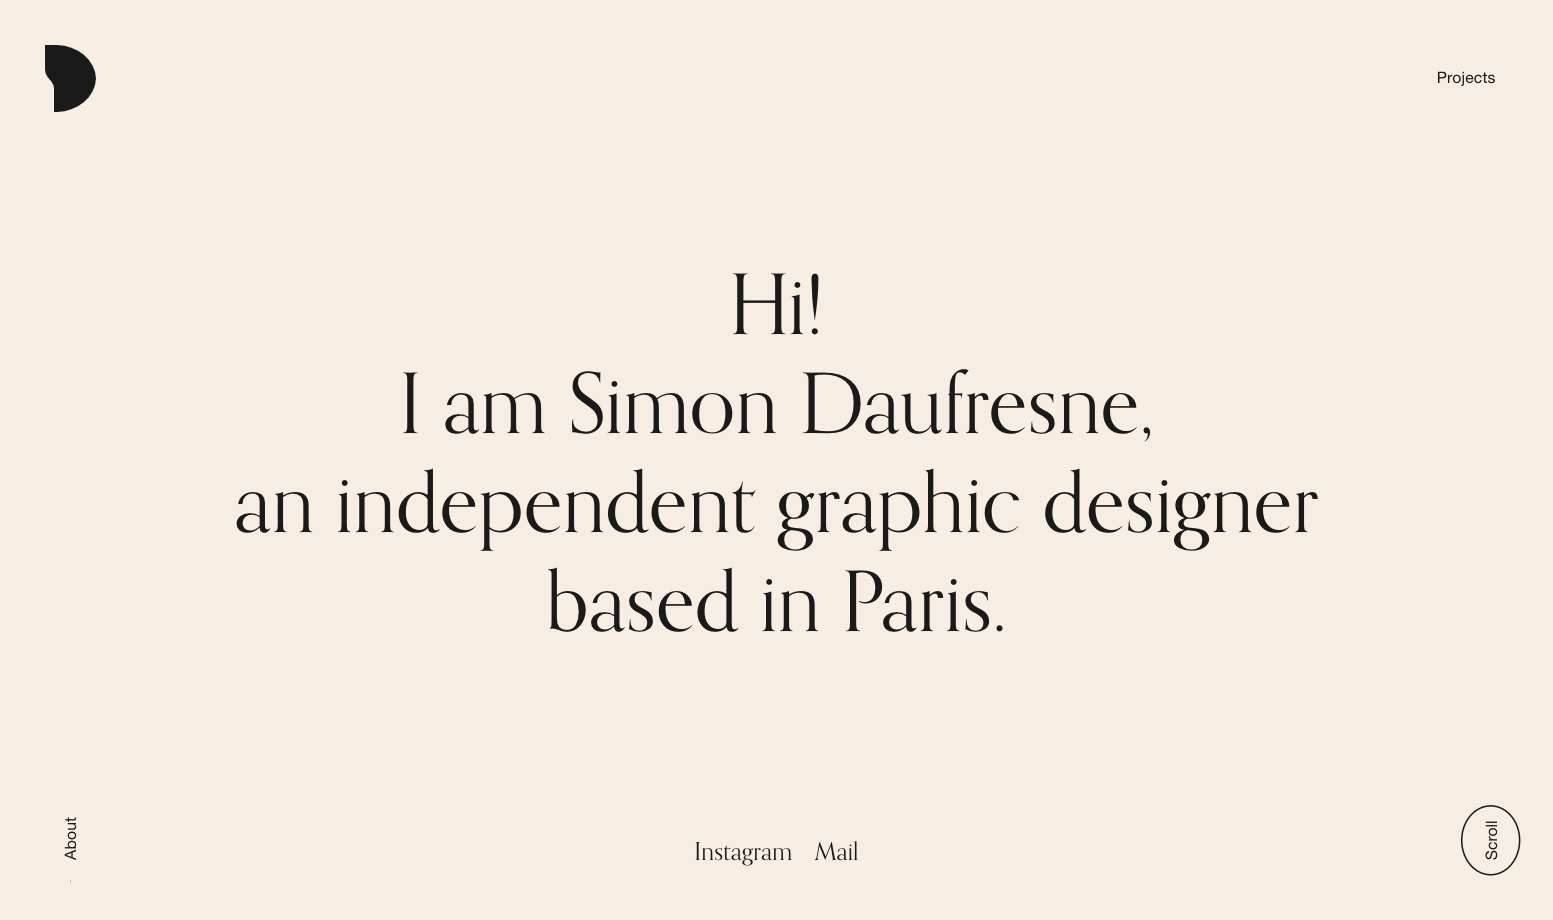 Simon Daufresne's portfolio website